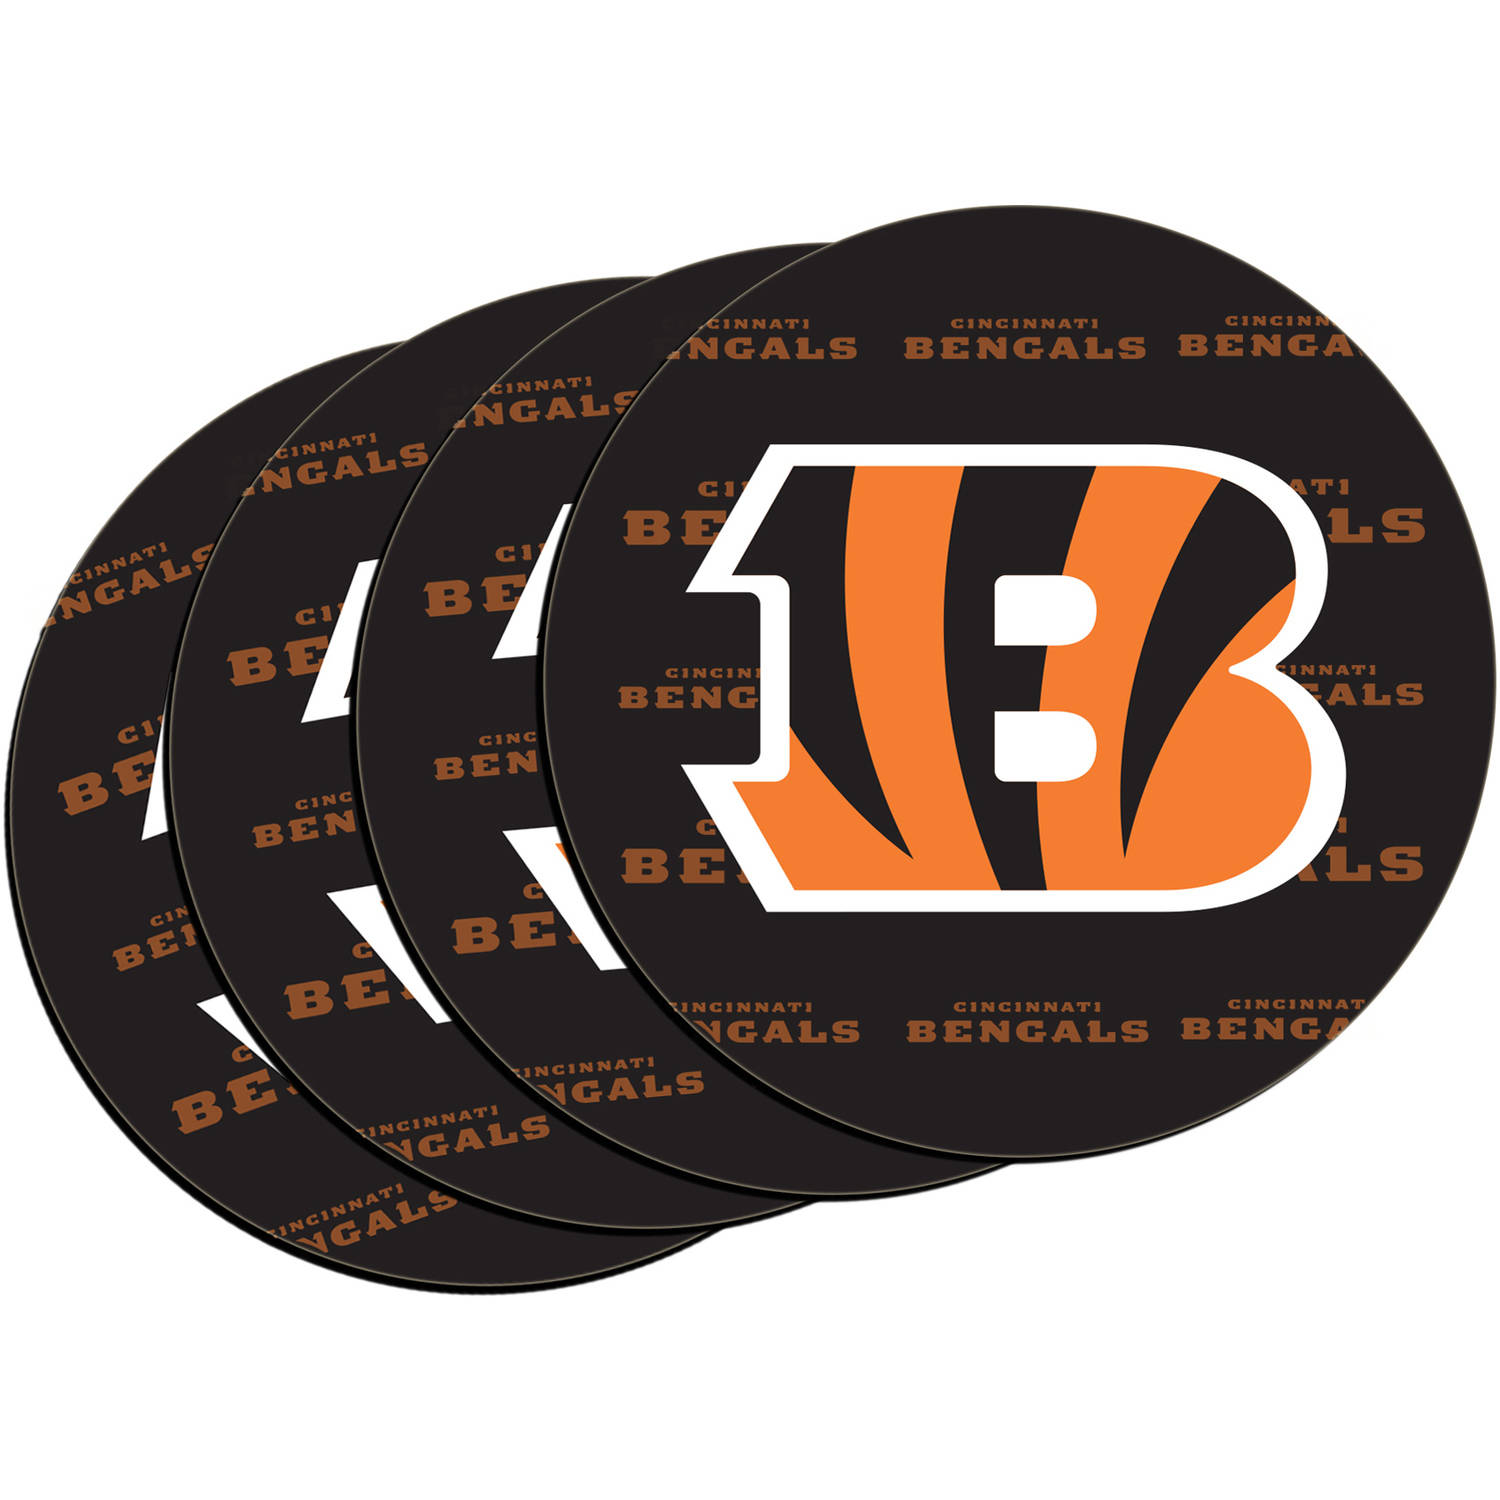 Cincinnati Bengals Car Coasters Price Compare